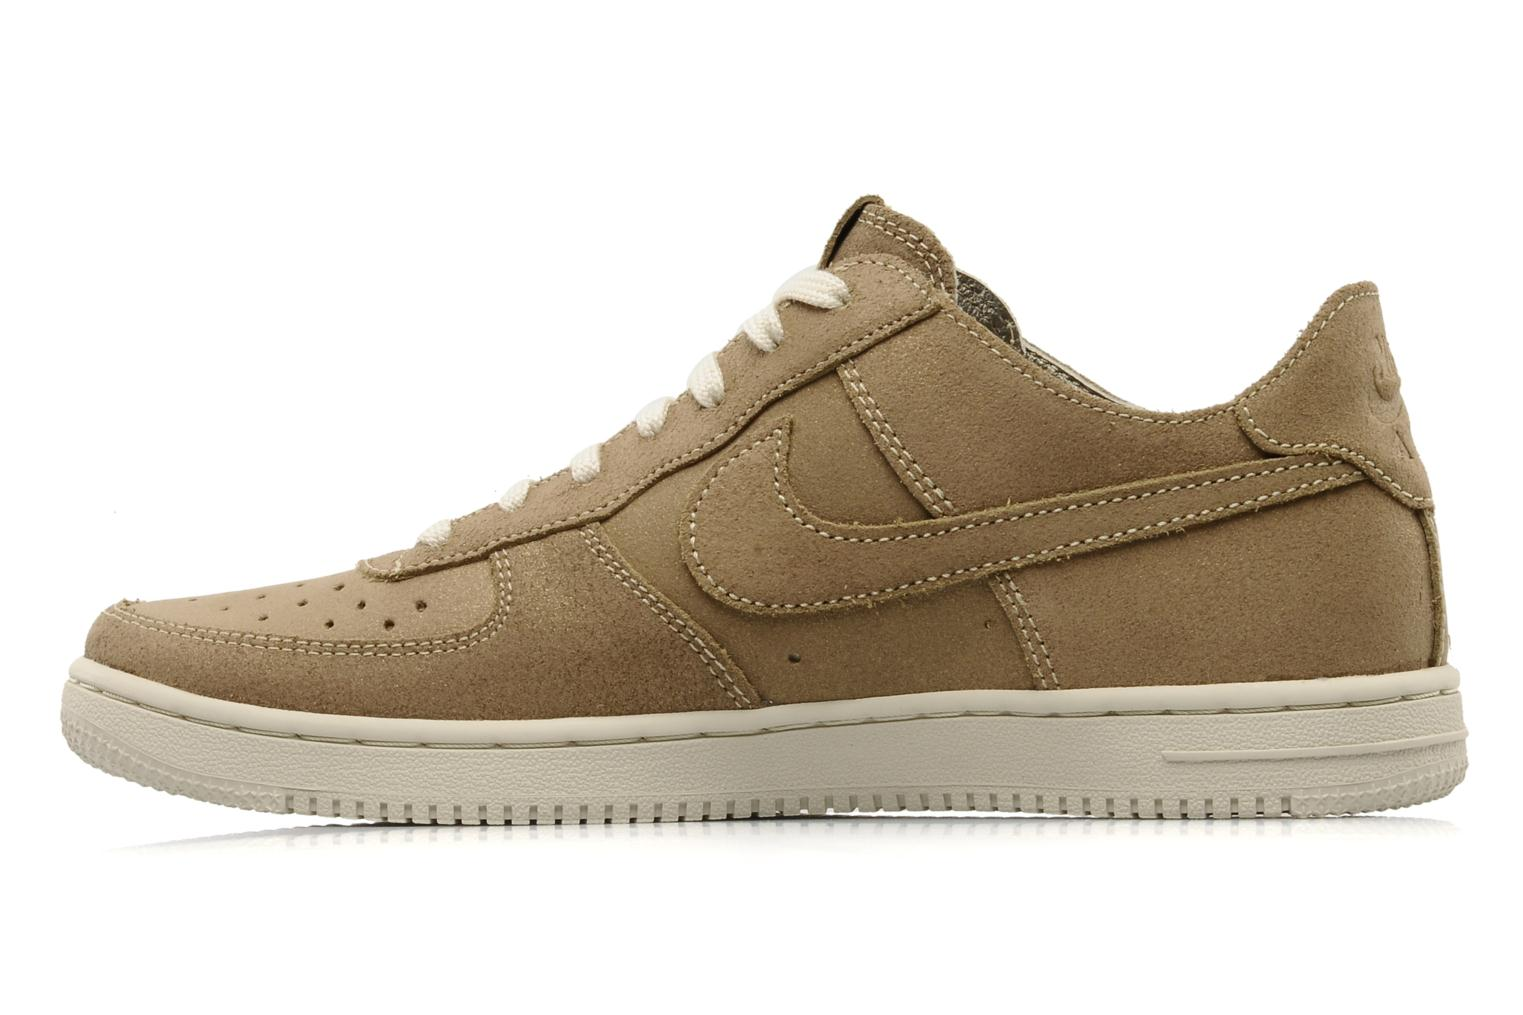 Wmns air force 1 low light Mtlc gold grain/mtlc gld grain